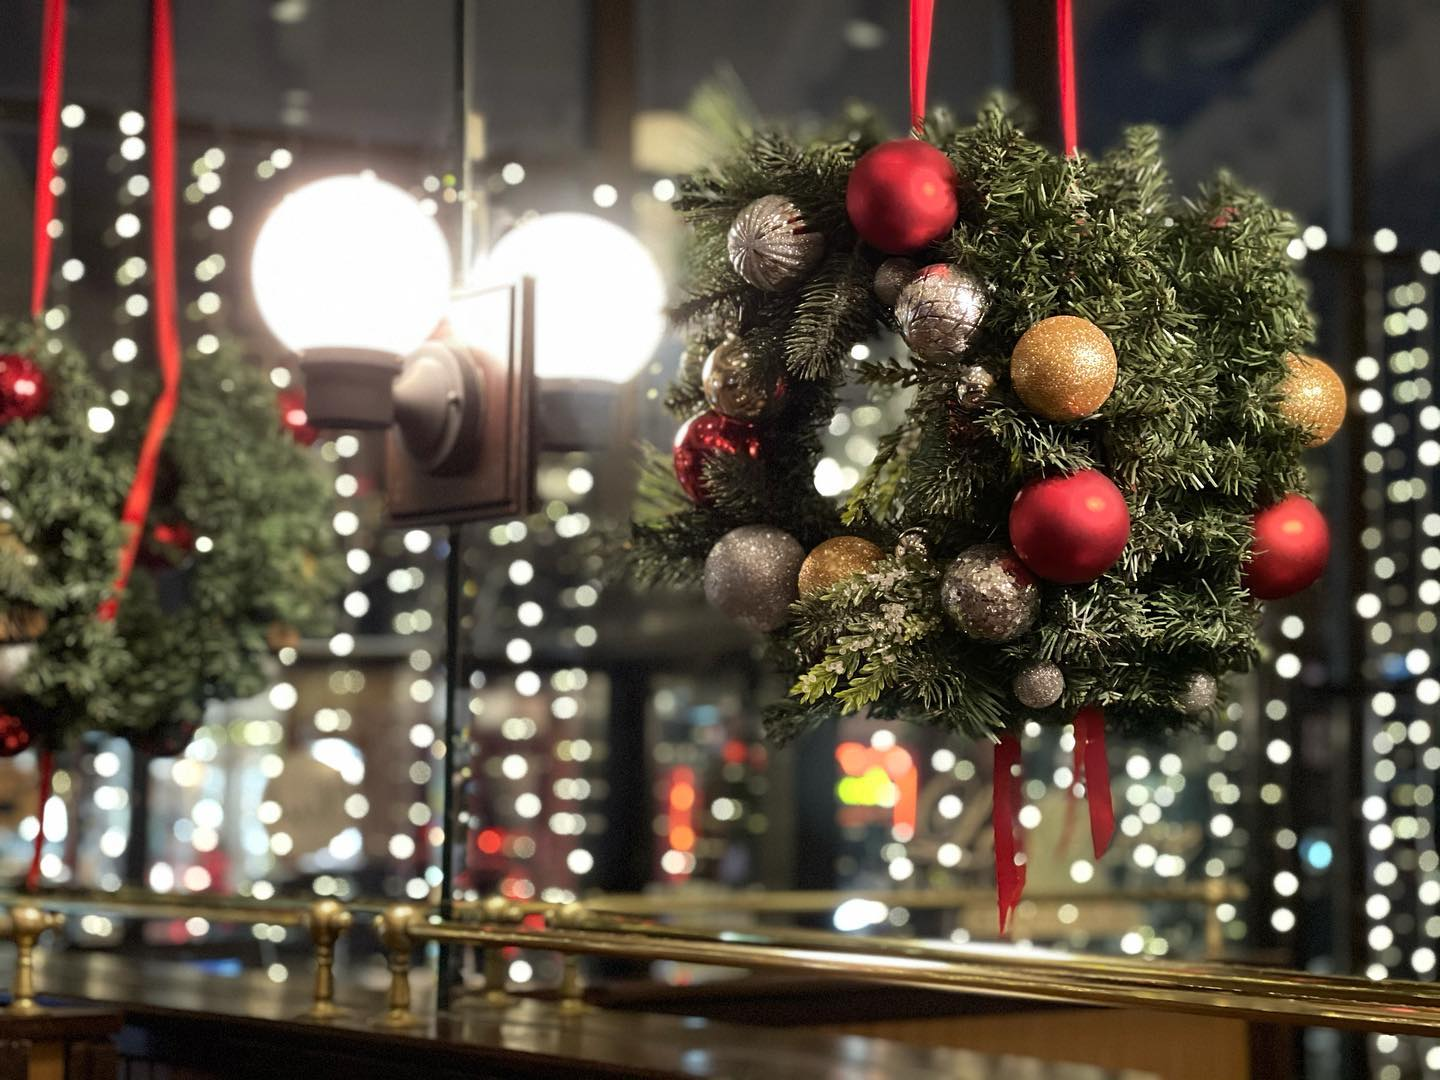 Wreath with ornaments